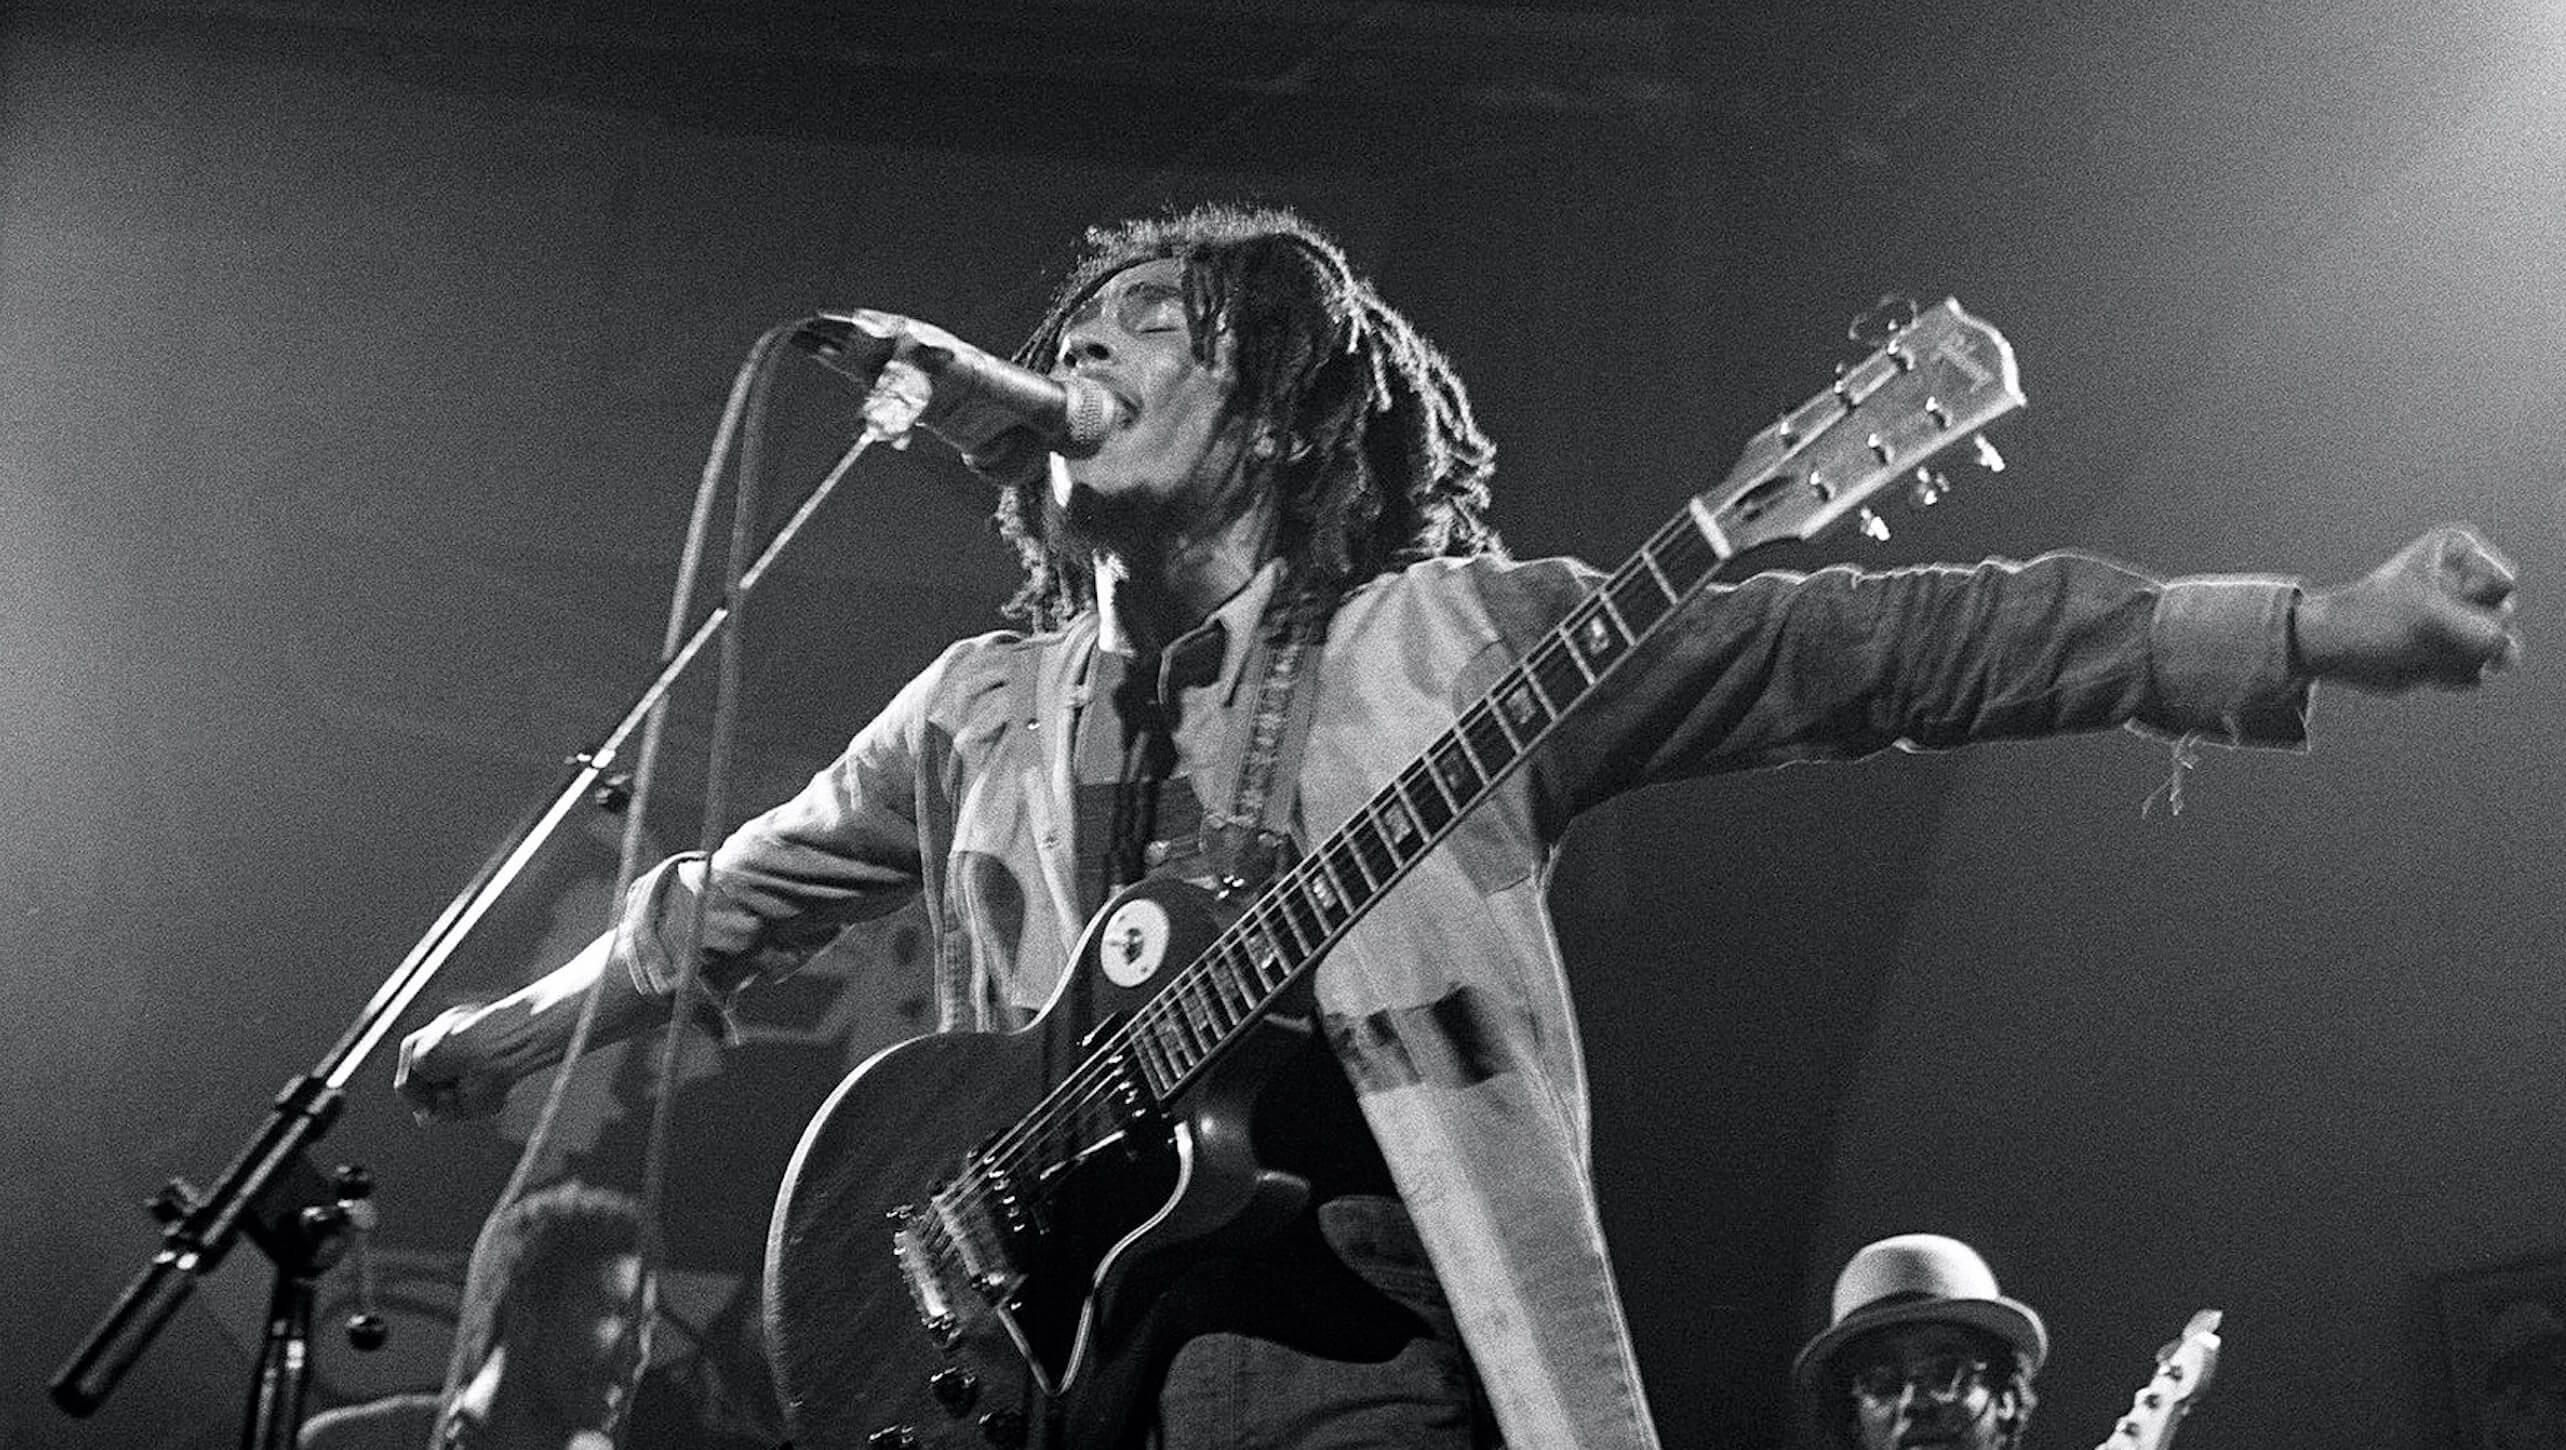 Bob Marley Doku © Shangri-La Entertainment/Tuff Gong Pictures/All Rights Reserved